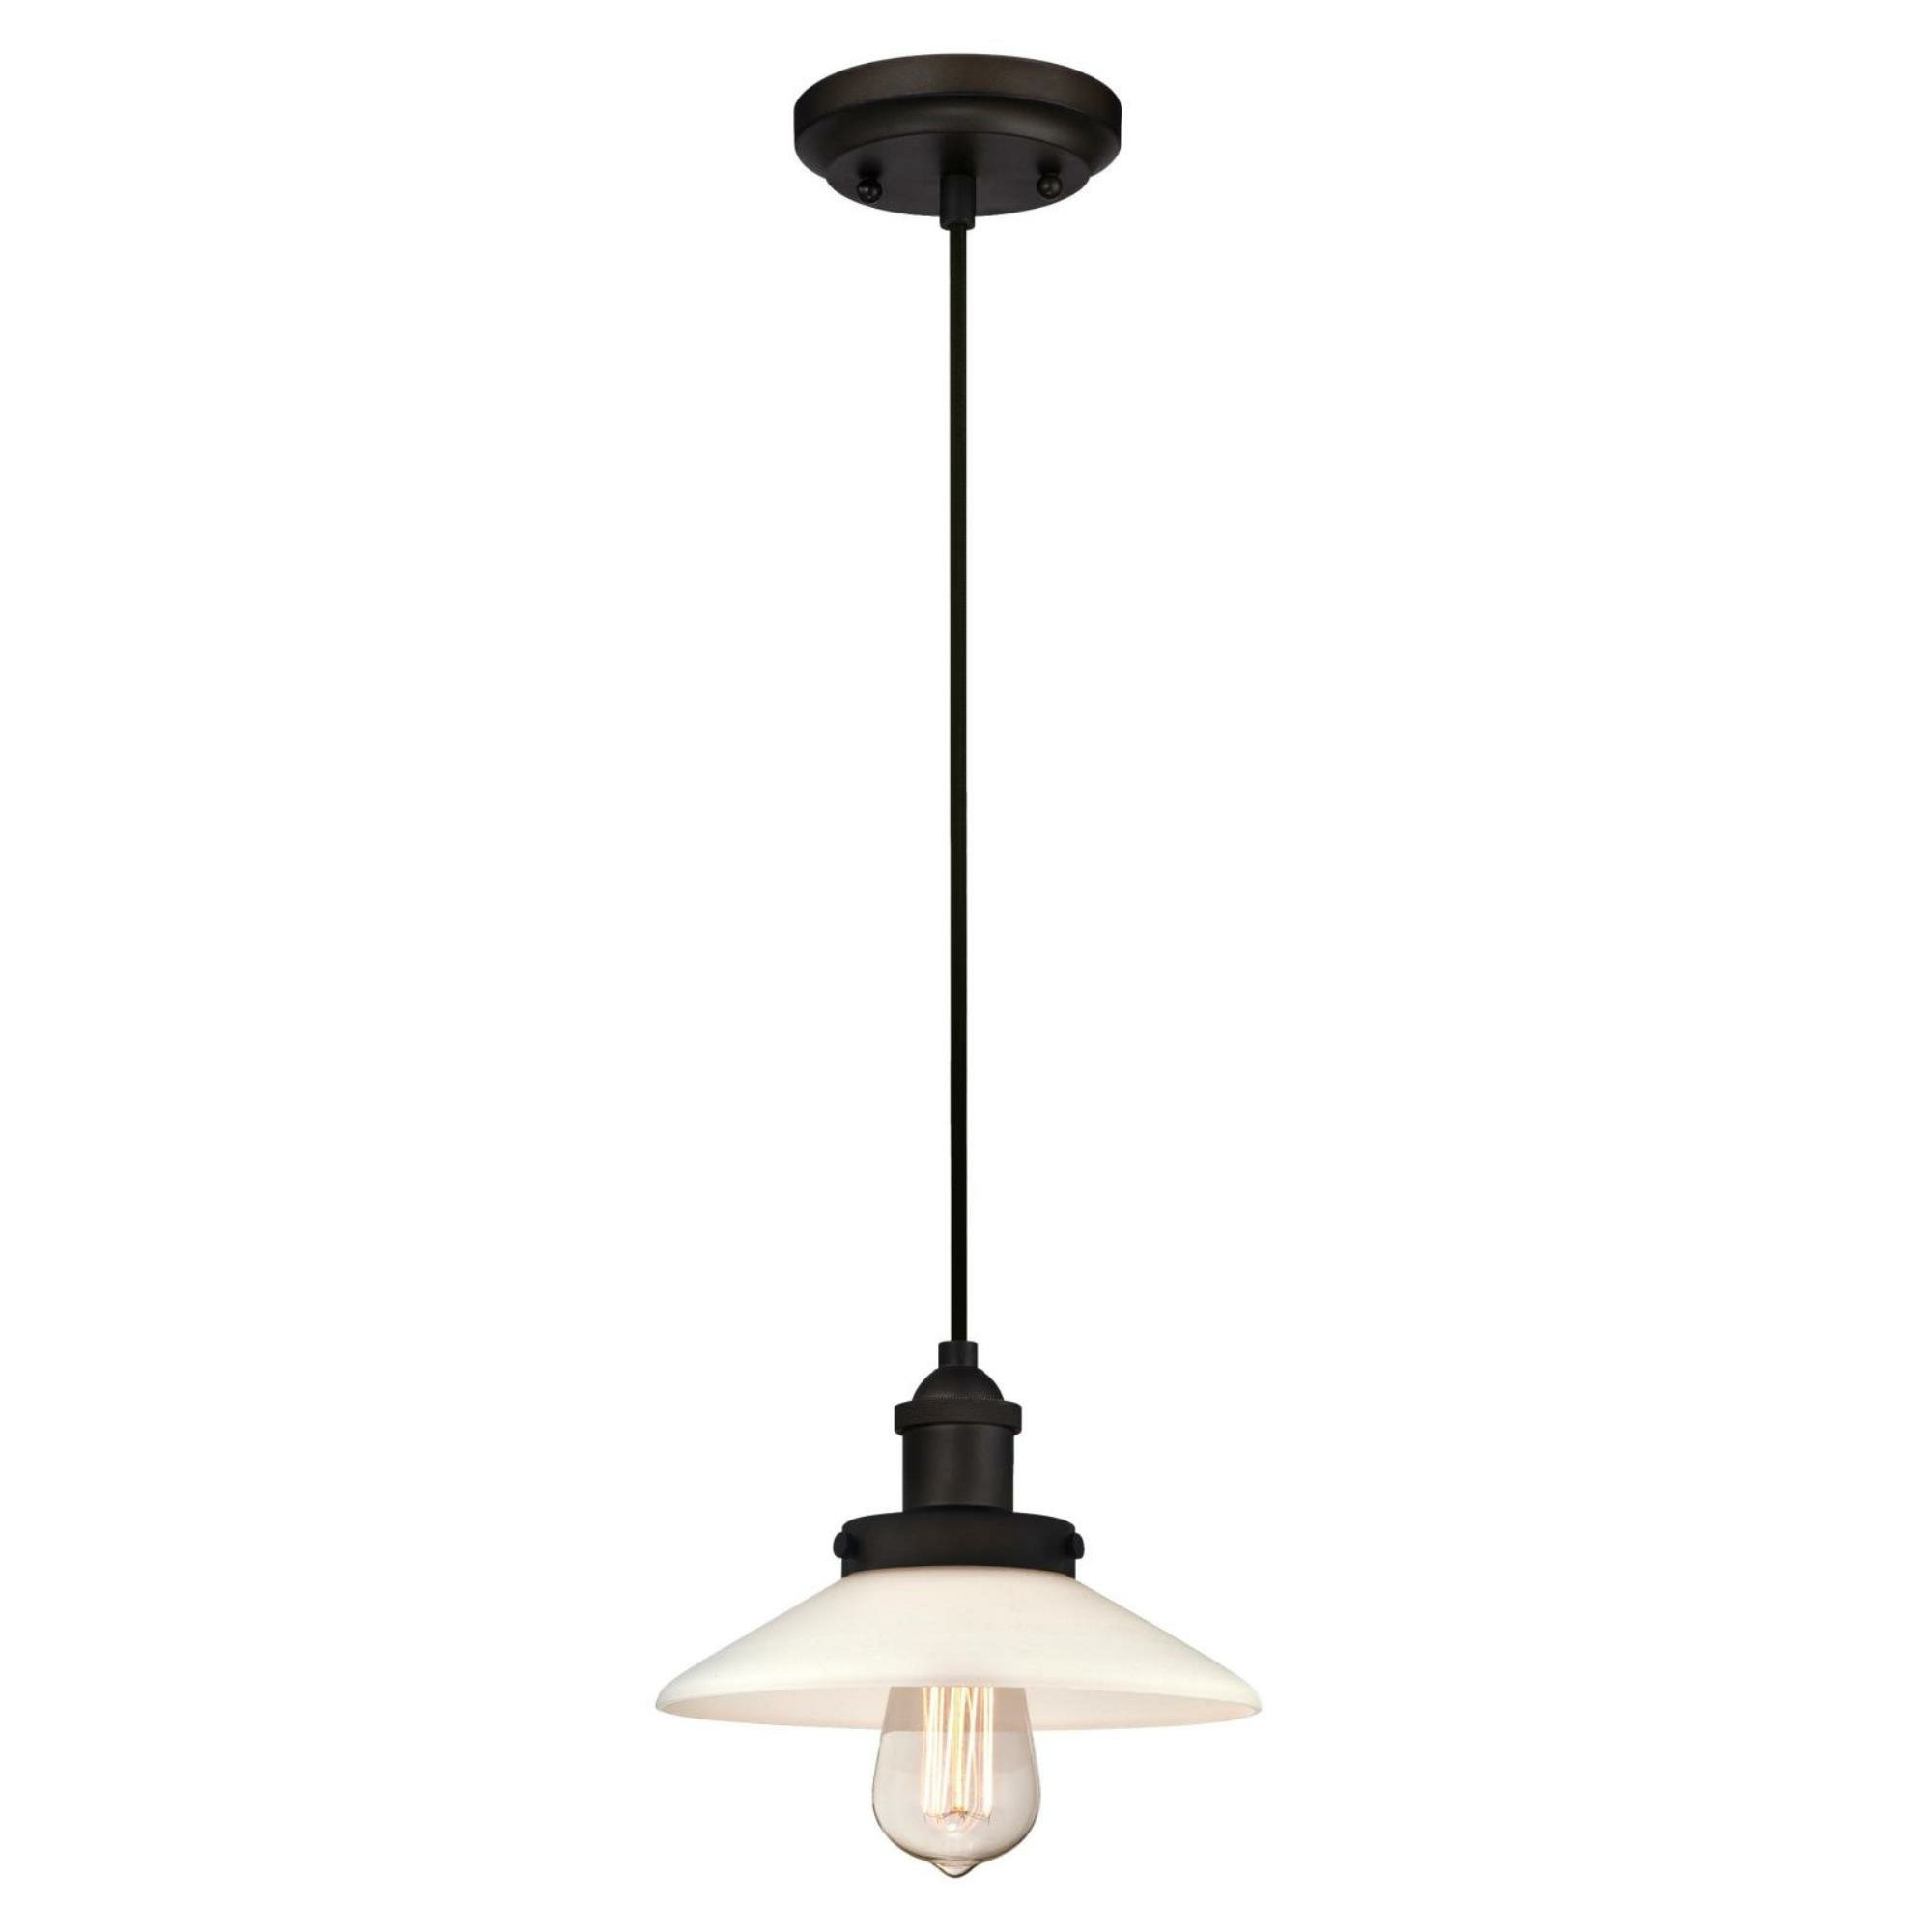 Famous Cinchring 1 Light Cone Pendants Throughout Darcella 1 Light Single Cone Pendant (View 10 of 25)